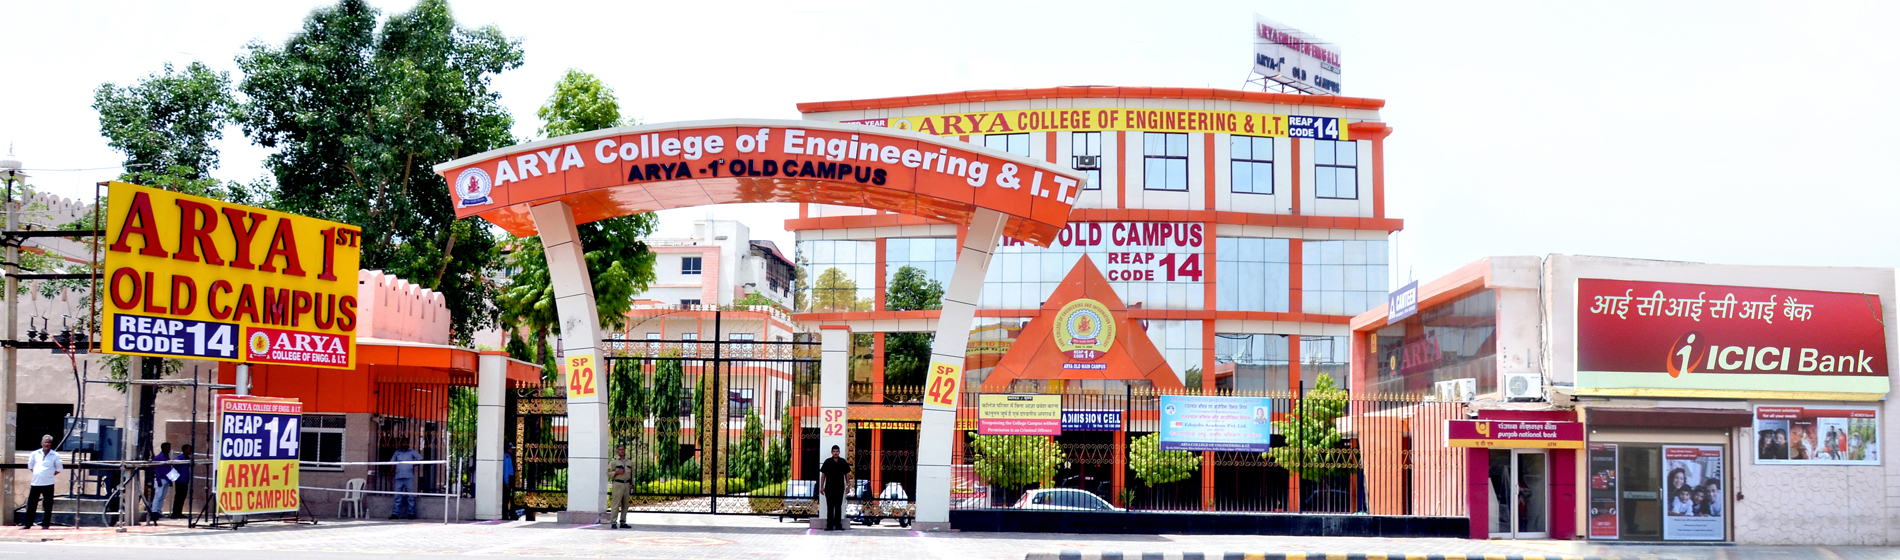 Arya college campus, arya college of engineering and it, arya 1st old campus, arya sp42, arya college jaipur, best engineering college of rajasthan